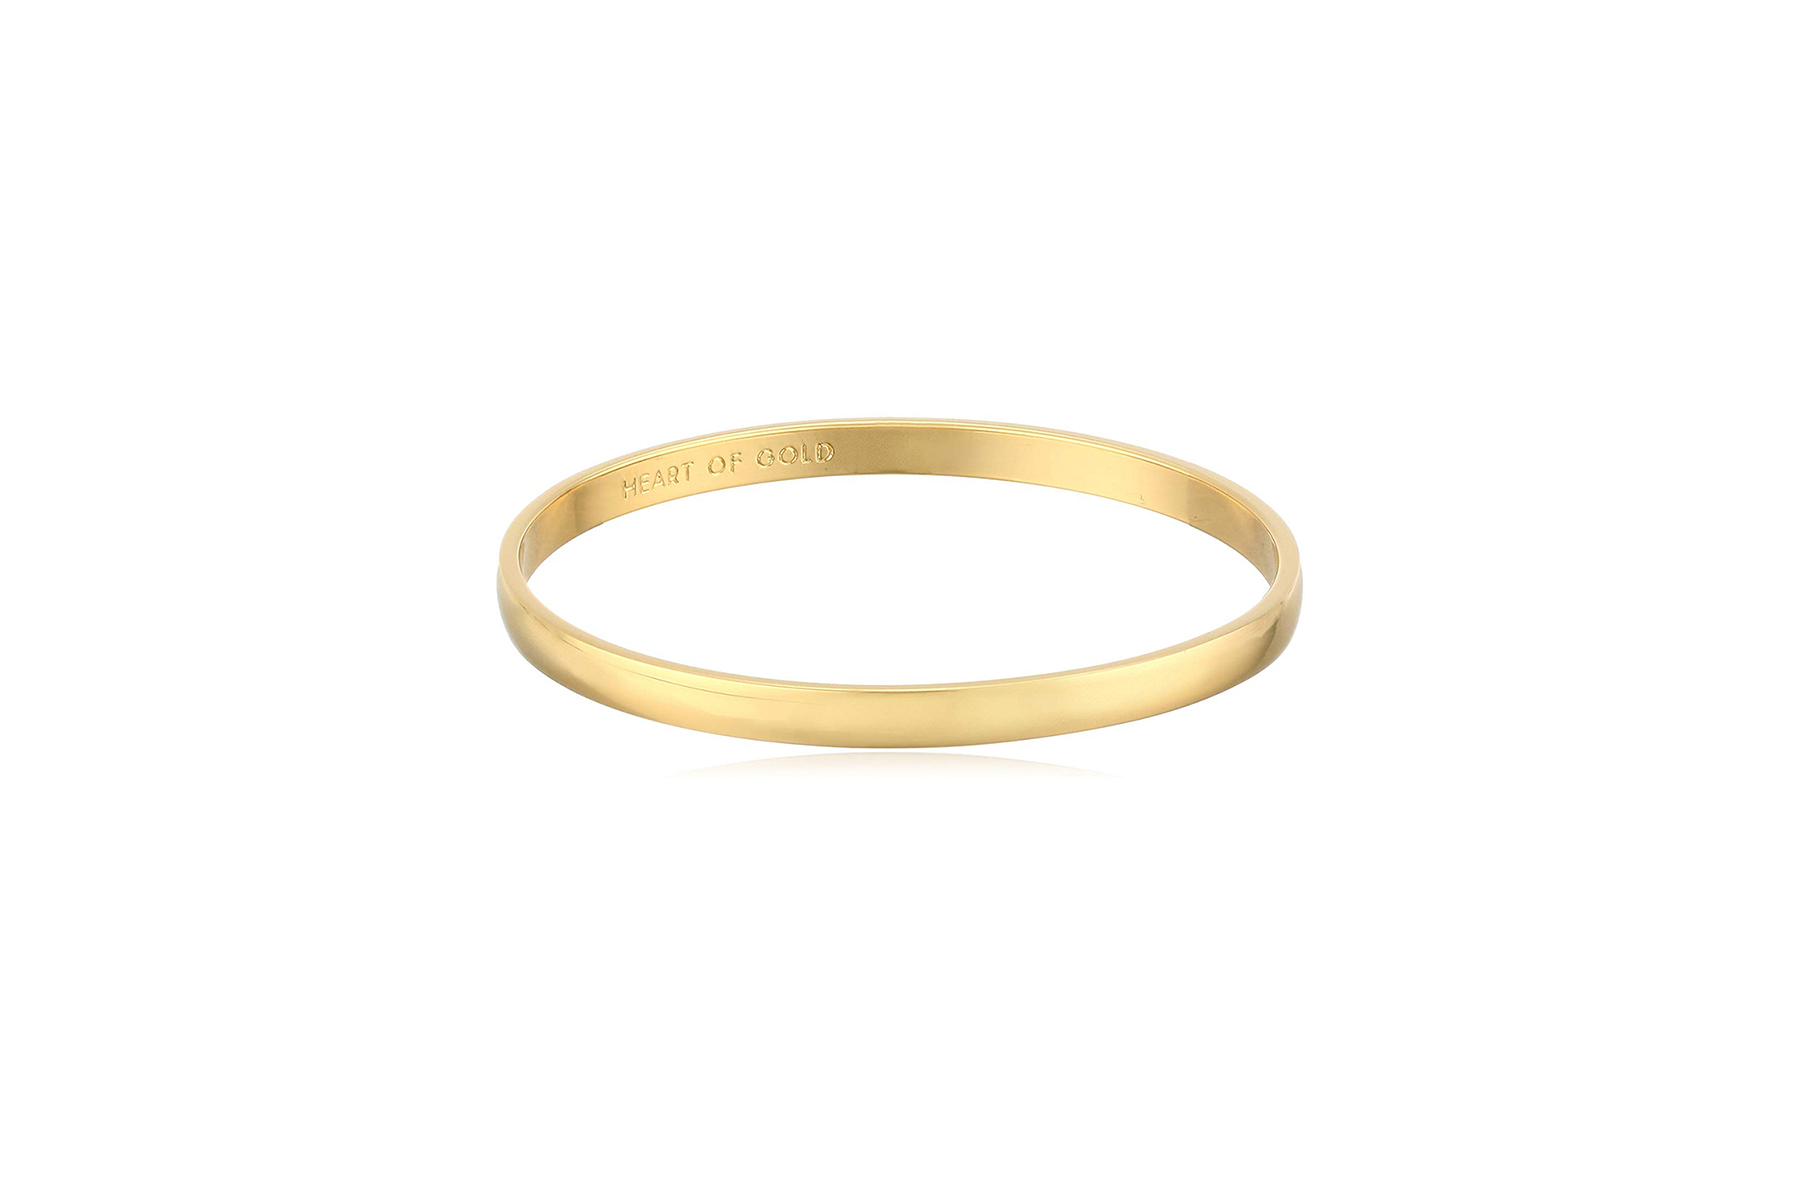 Kate Spade New York Heart of Gold Bangle